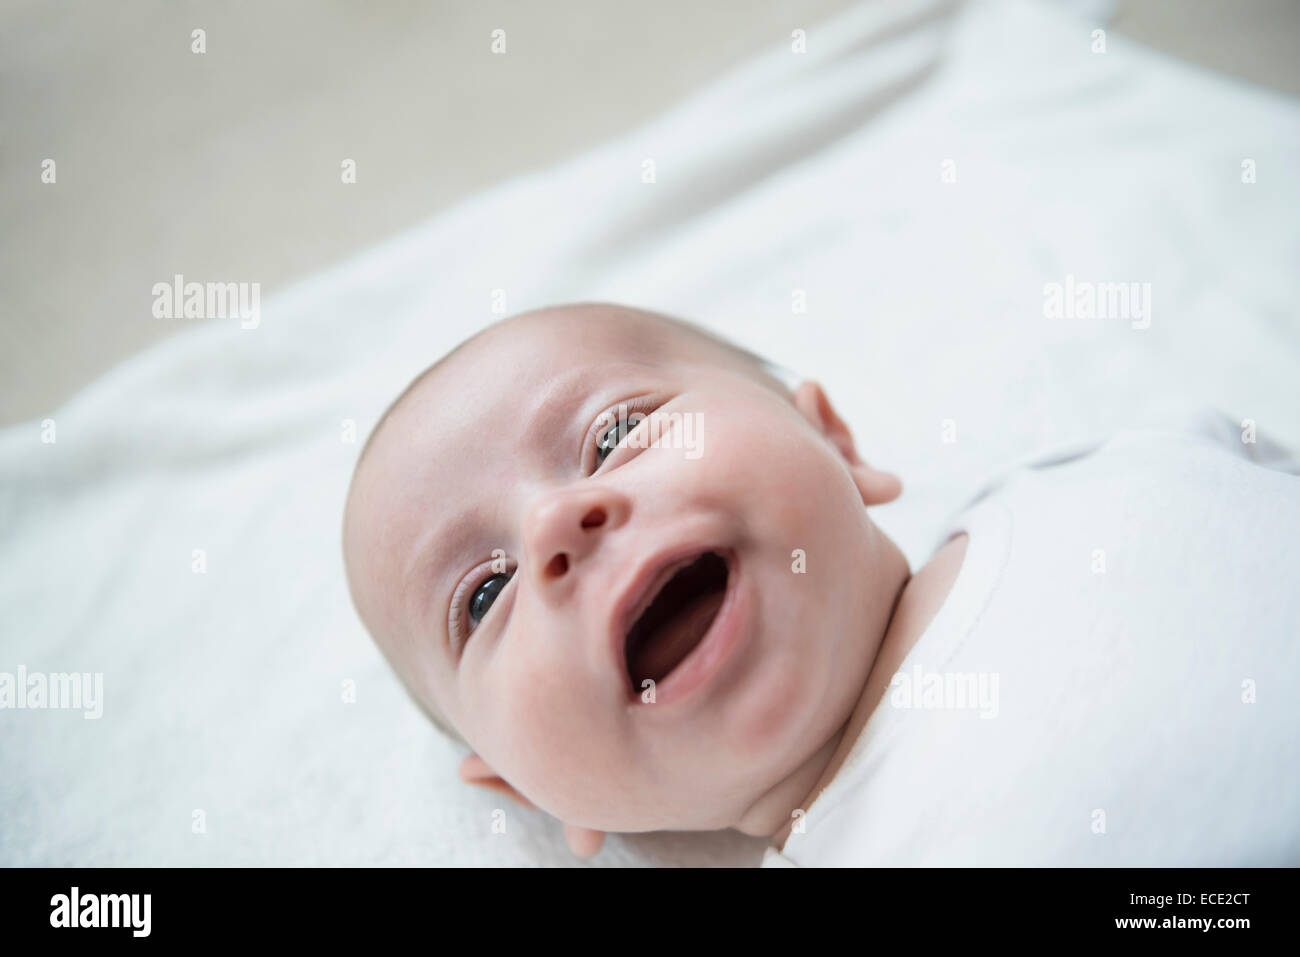 Baby boy lying on bed, smiling - Stock Image